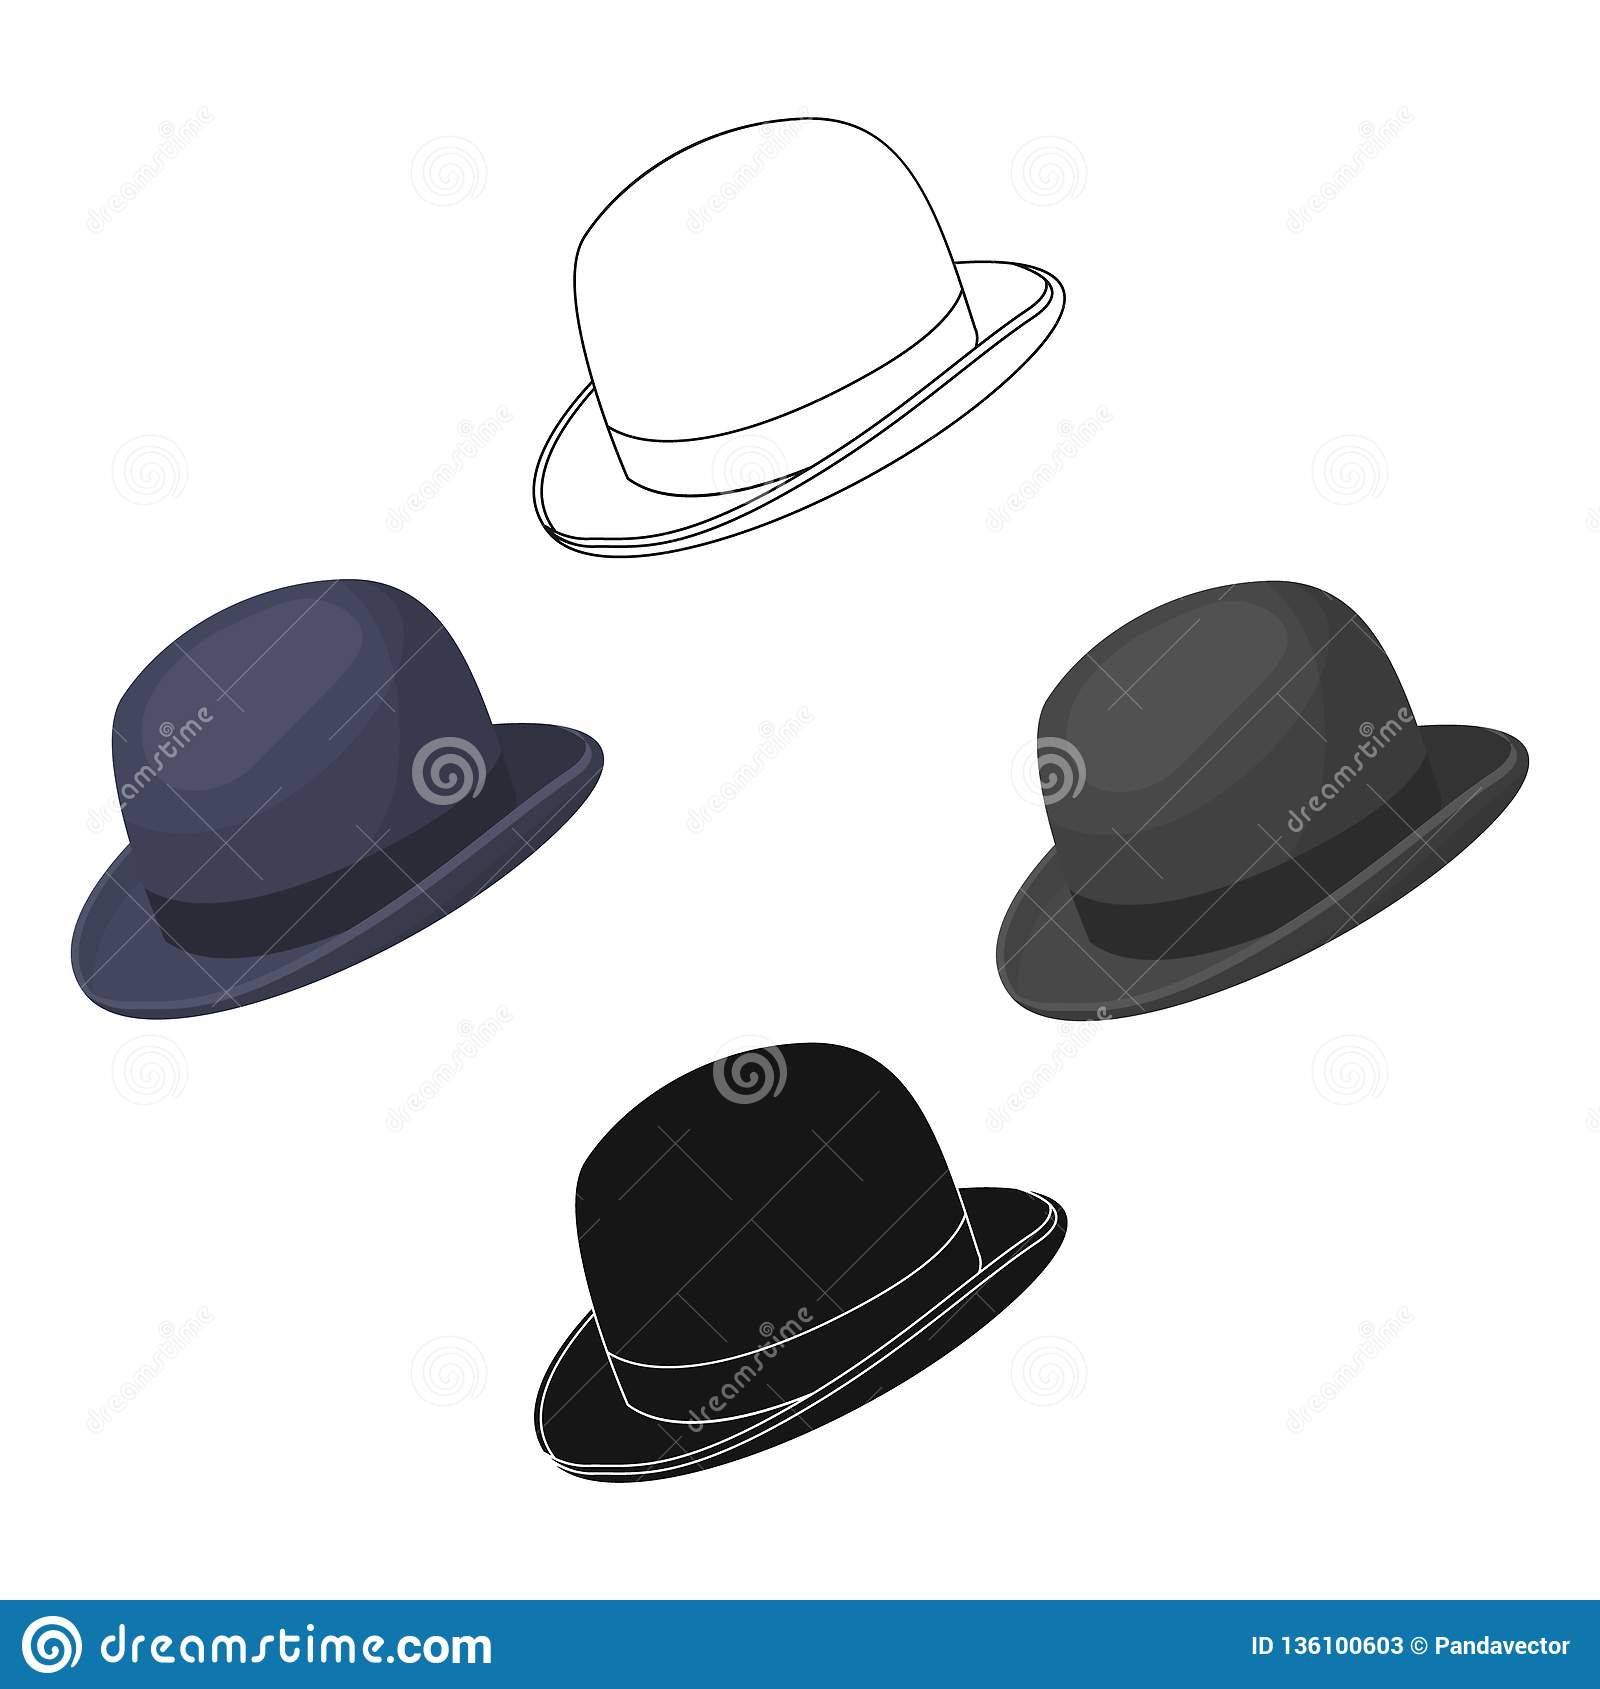 64a7d5630dab3 Bowler hat icon in cartoon style isolated on white background. Hipster  style symbol stock vector illustration.